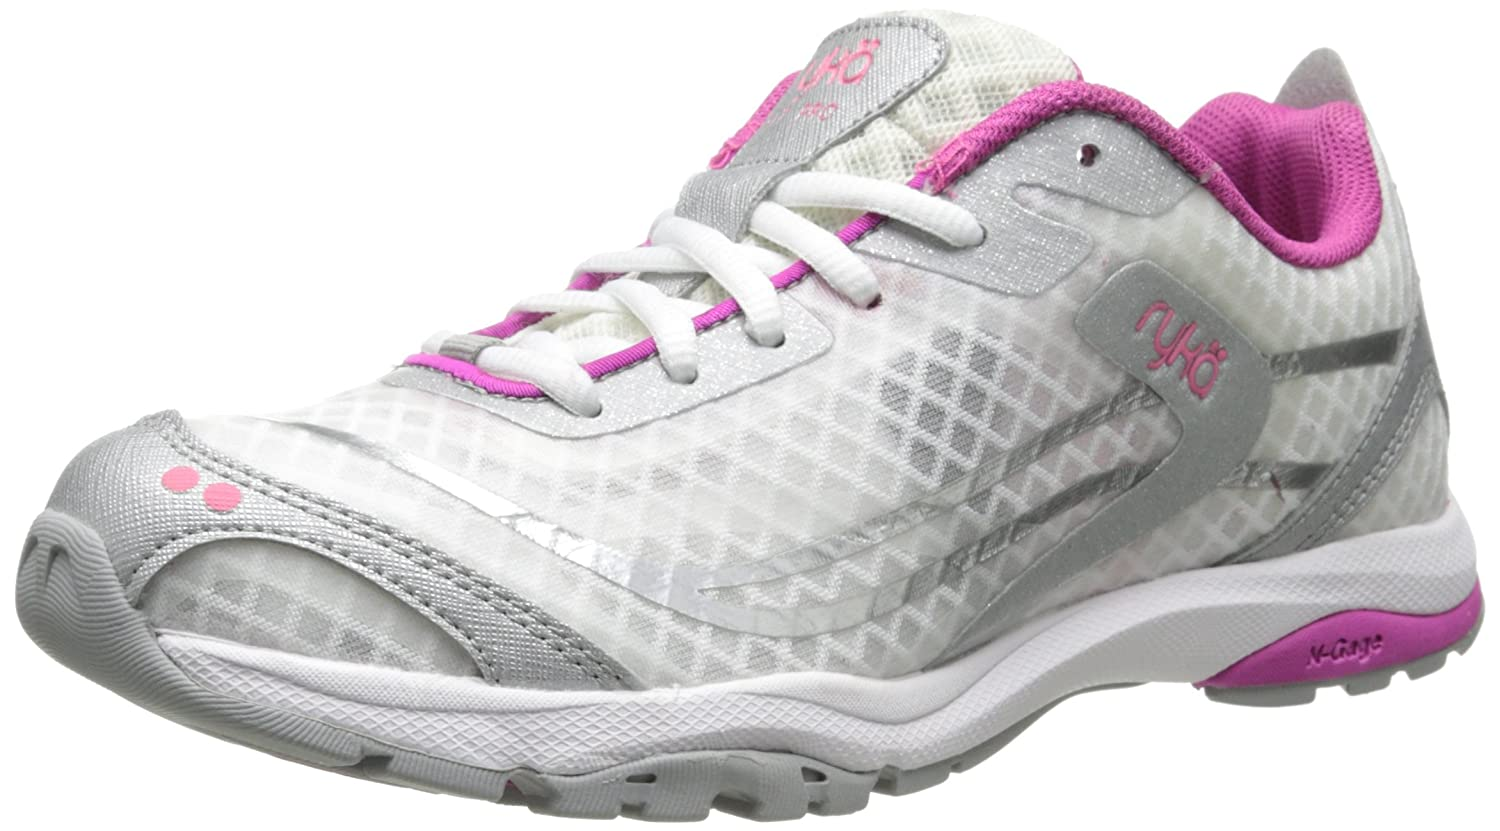 Why Purchase Ryka Running Shoes